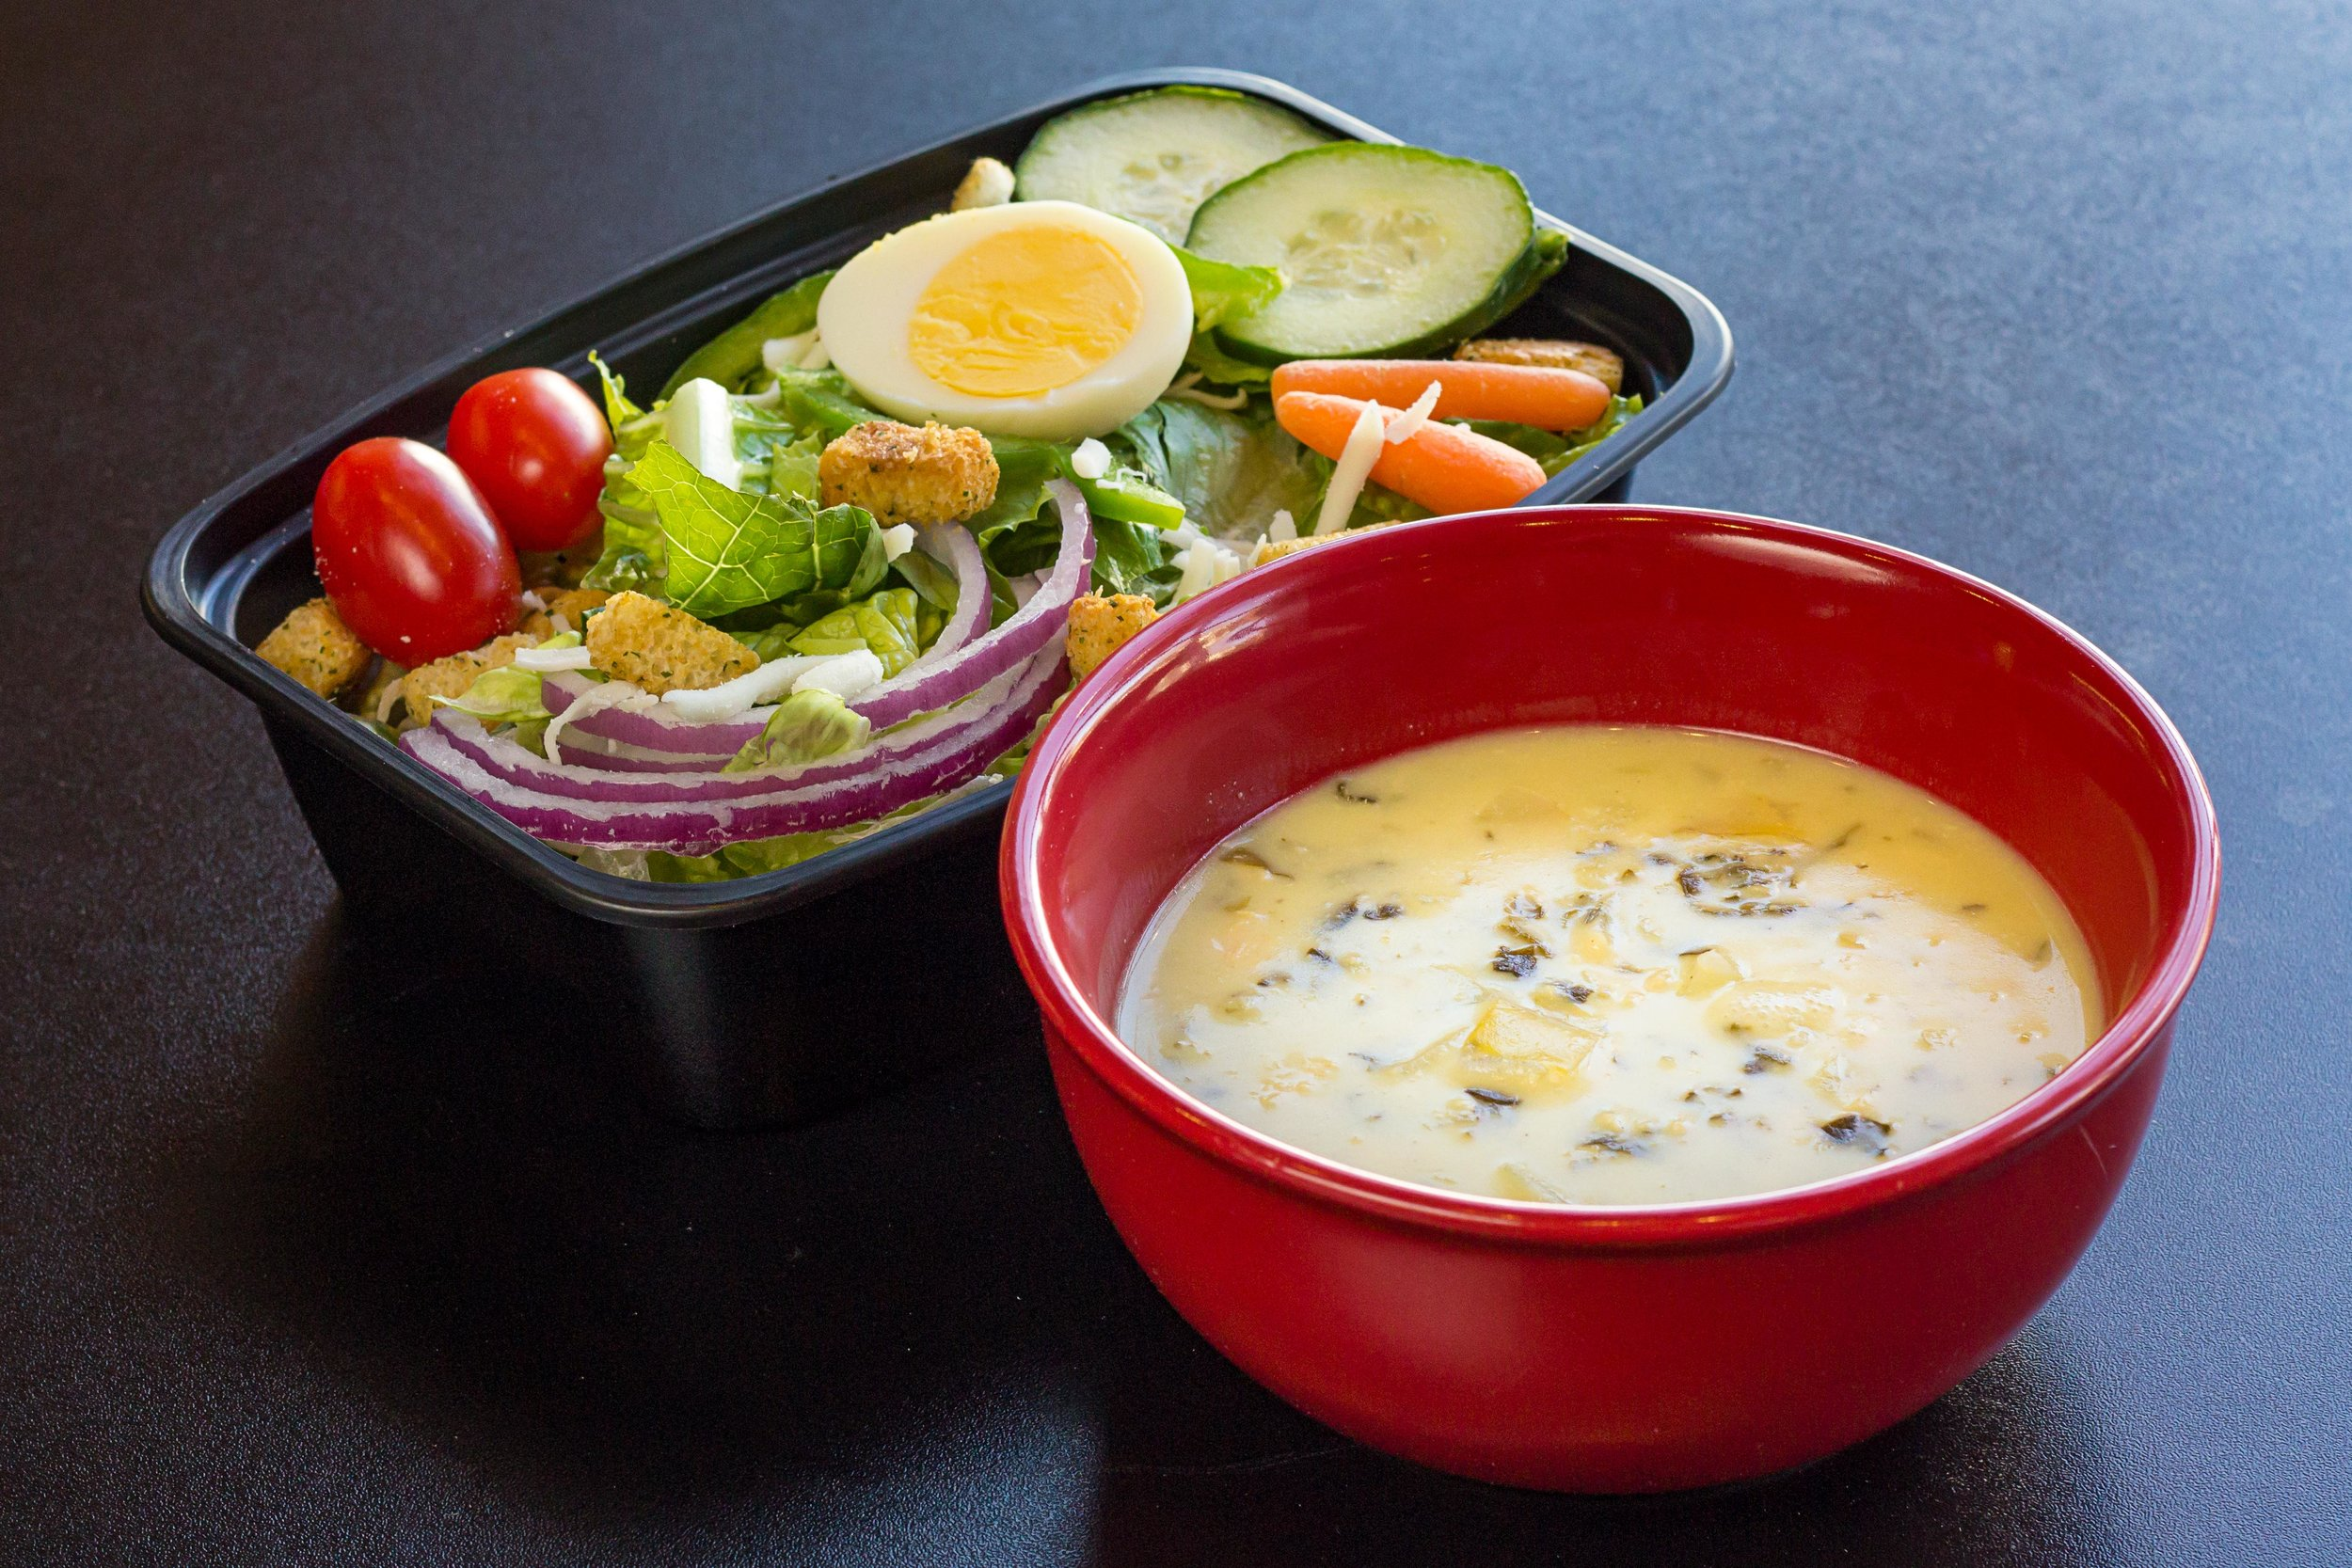 Half Garden Salad & Chicken Artichoke Florentine Soup- Soup & salad a wonderful combination, try one of our delicious stews today!